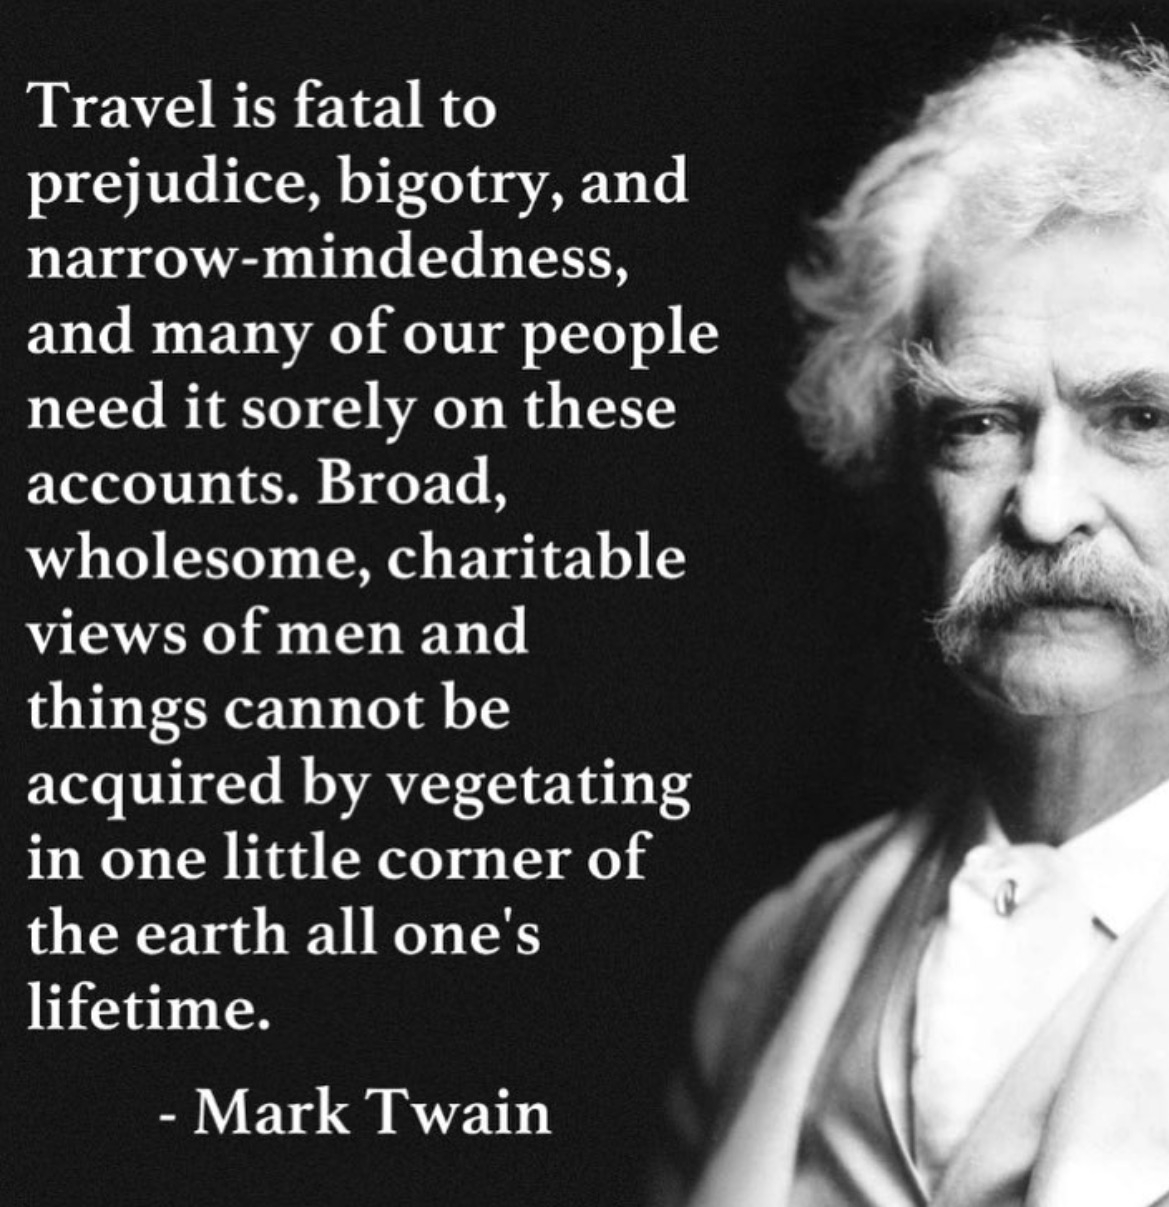 MarktwainTravel Quote.JPG